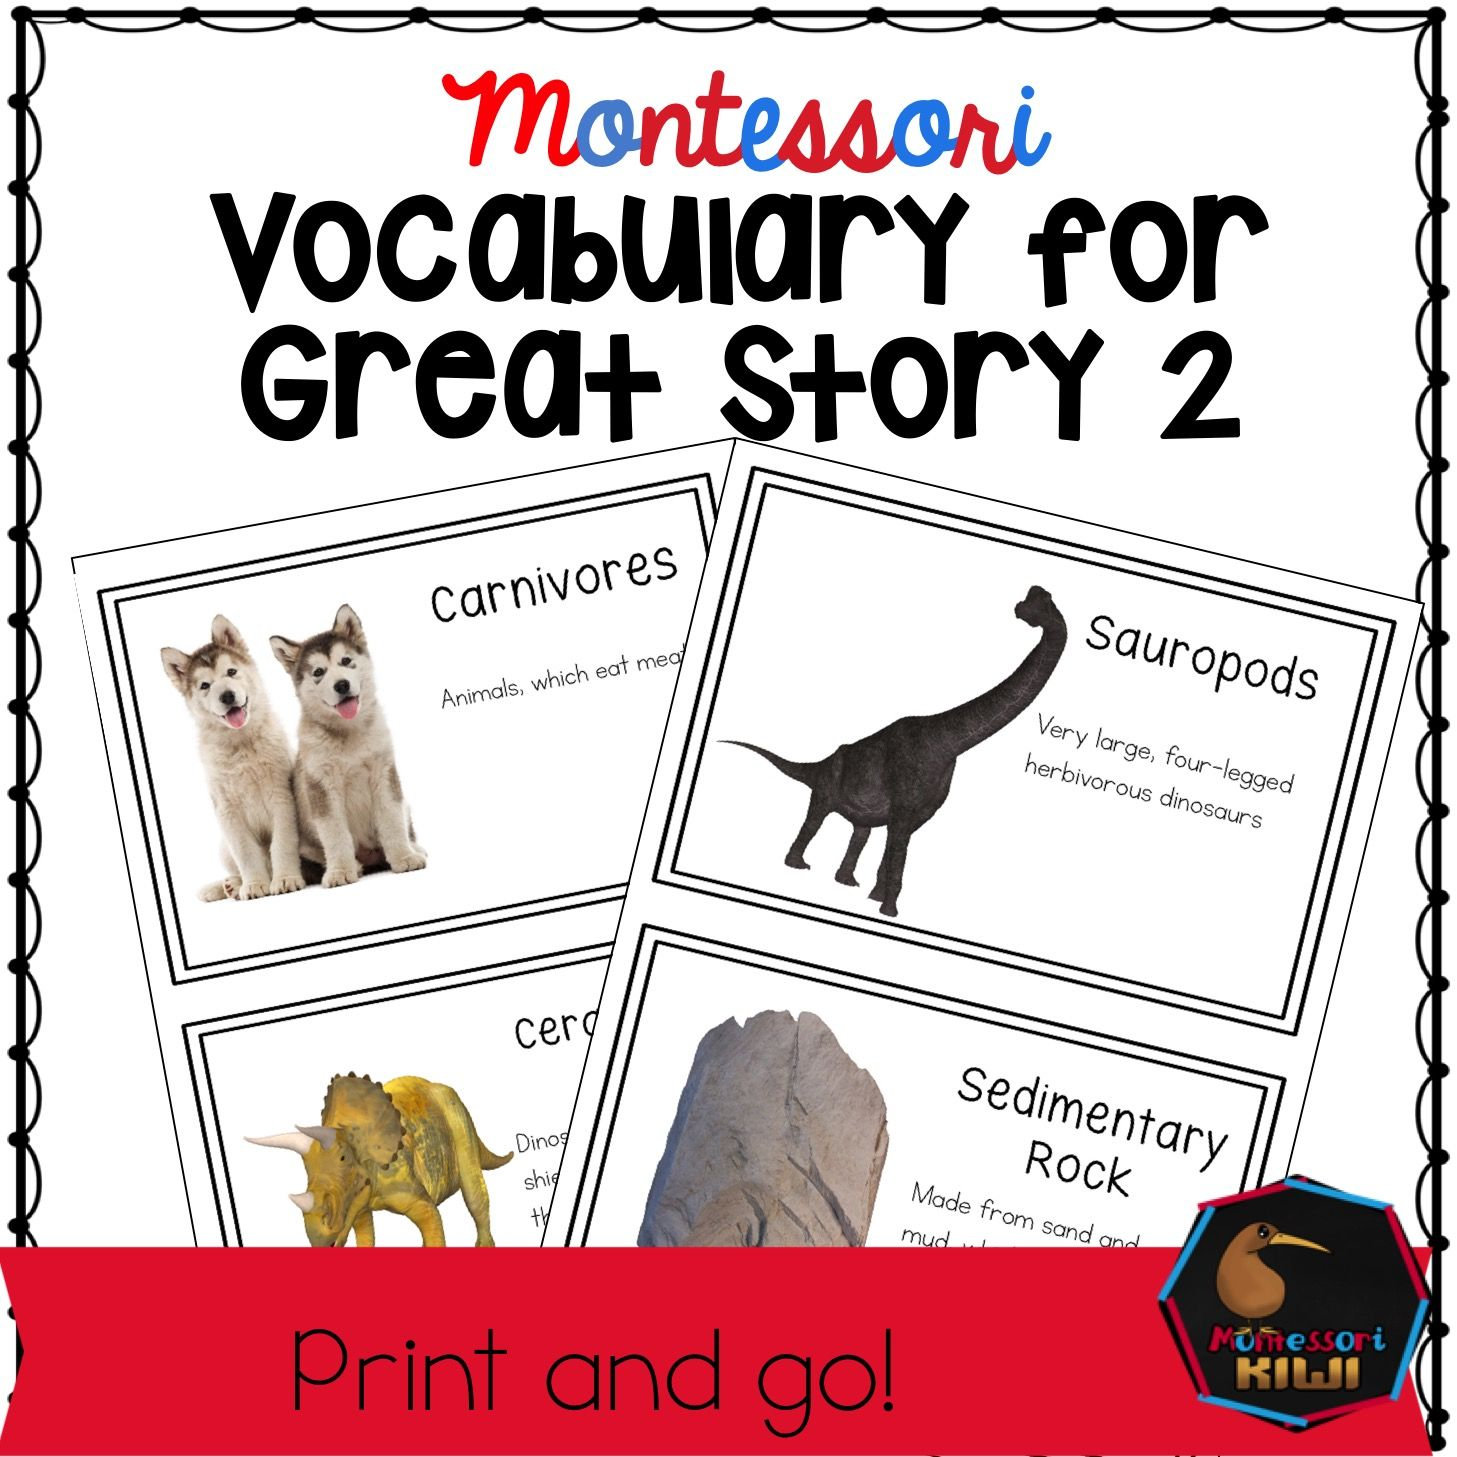 Prehistory Words For Montessori Second Great Story